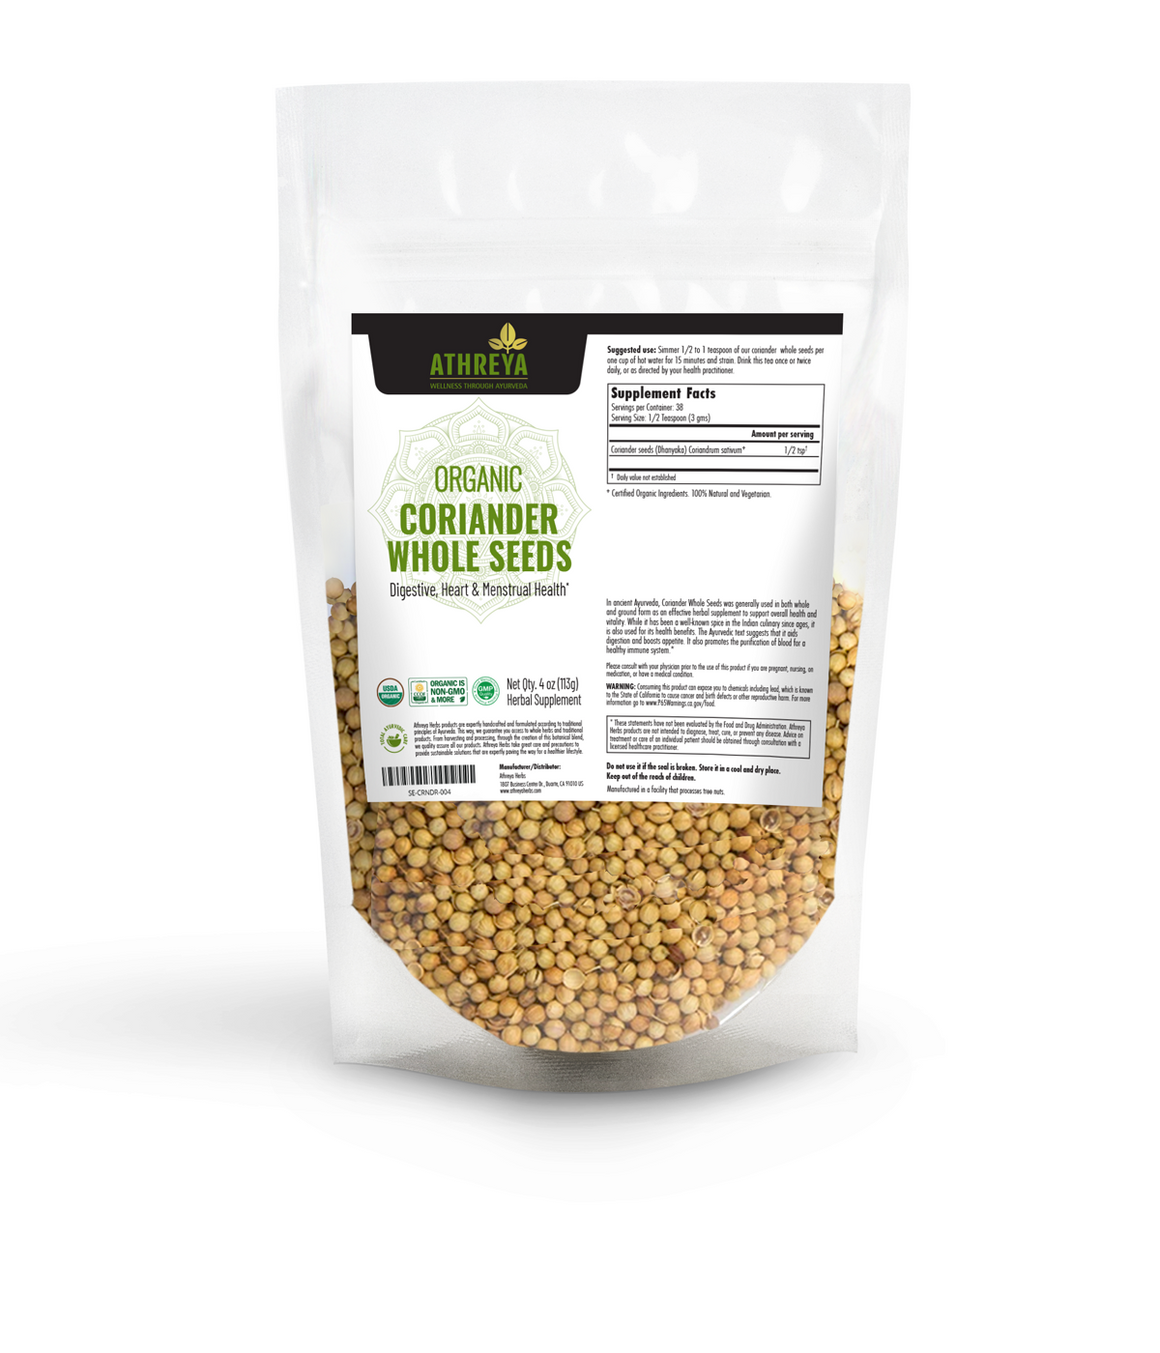 Organic Coriander Whole Seeds